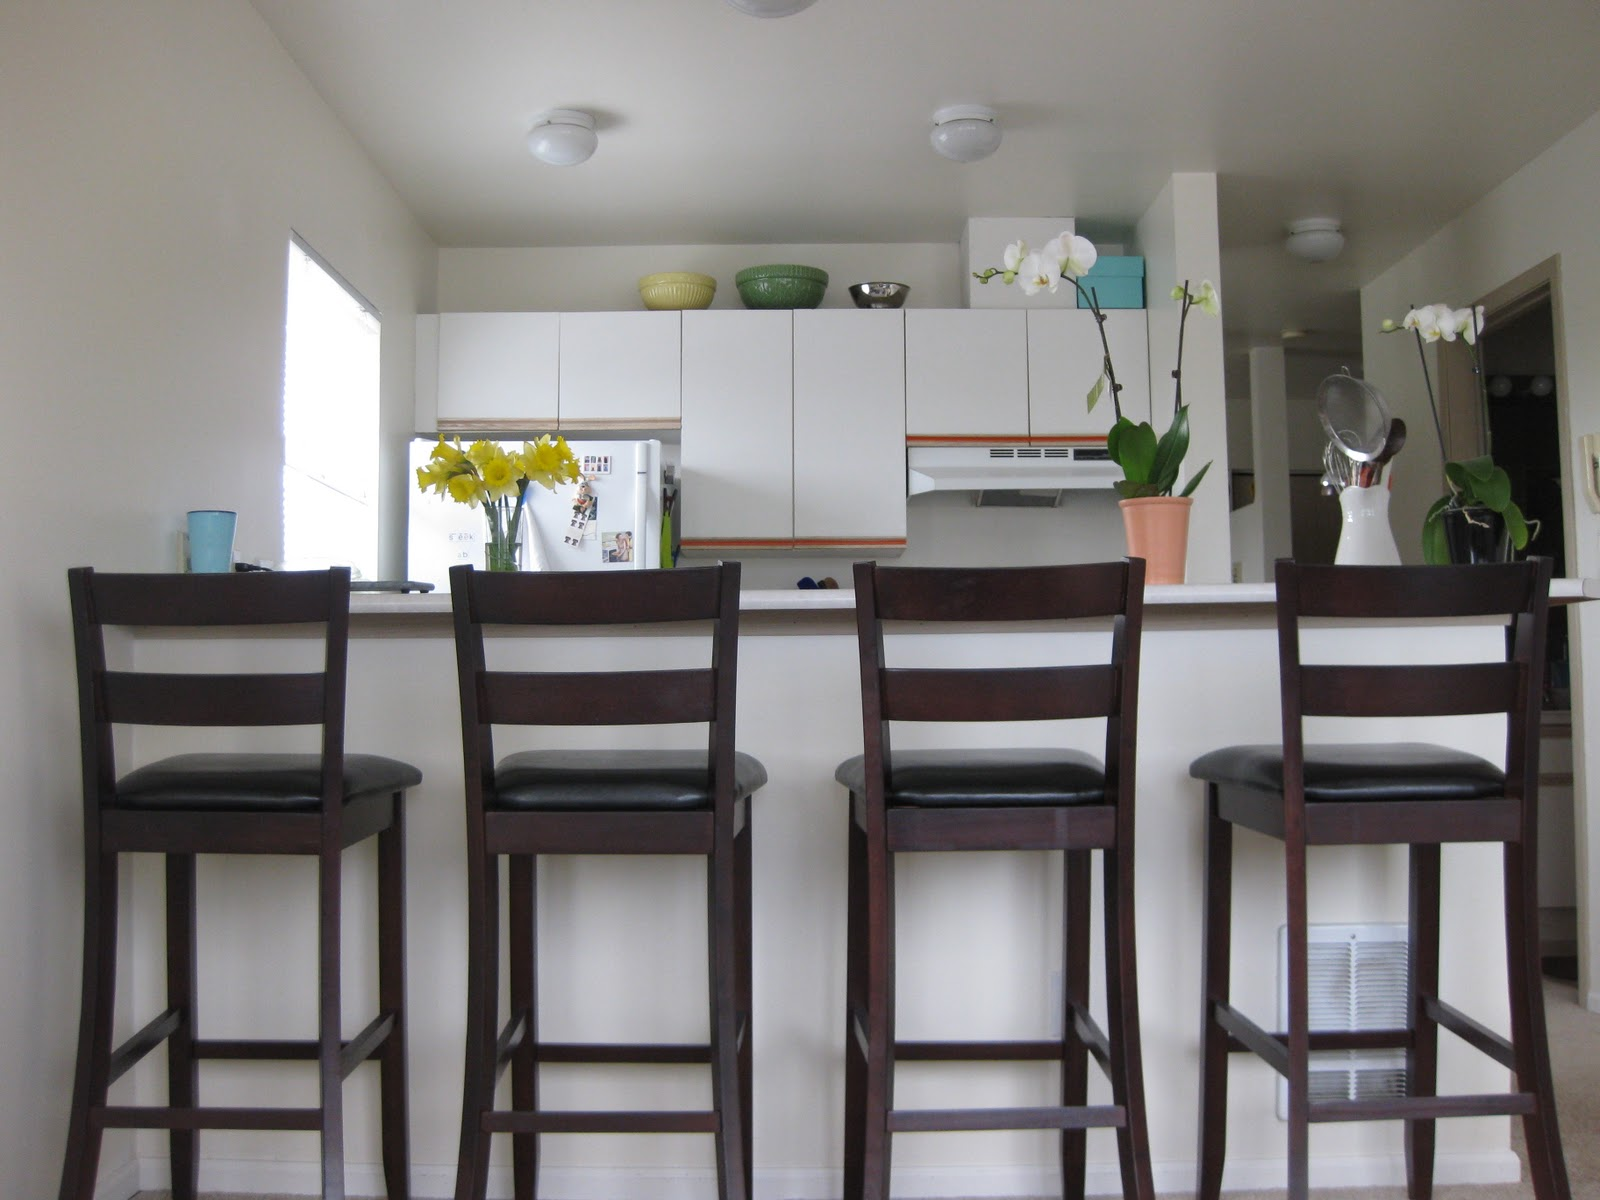 Sitting in the Kitchen – New Bar Stools